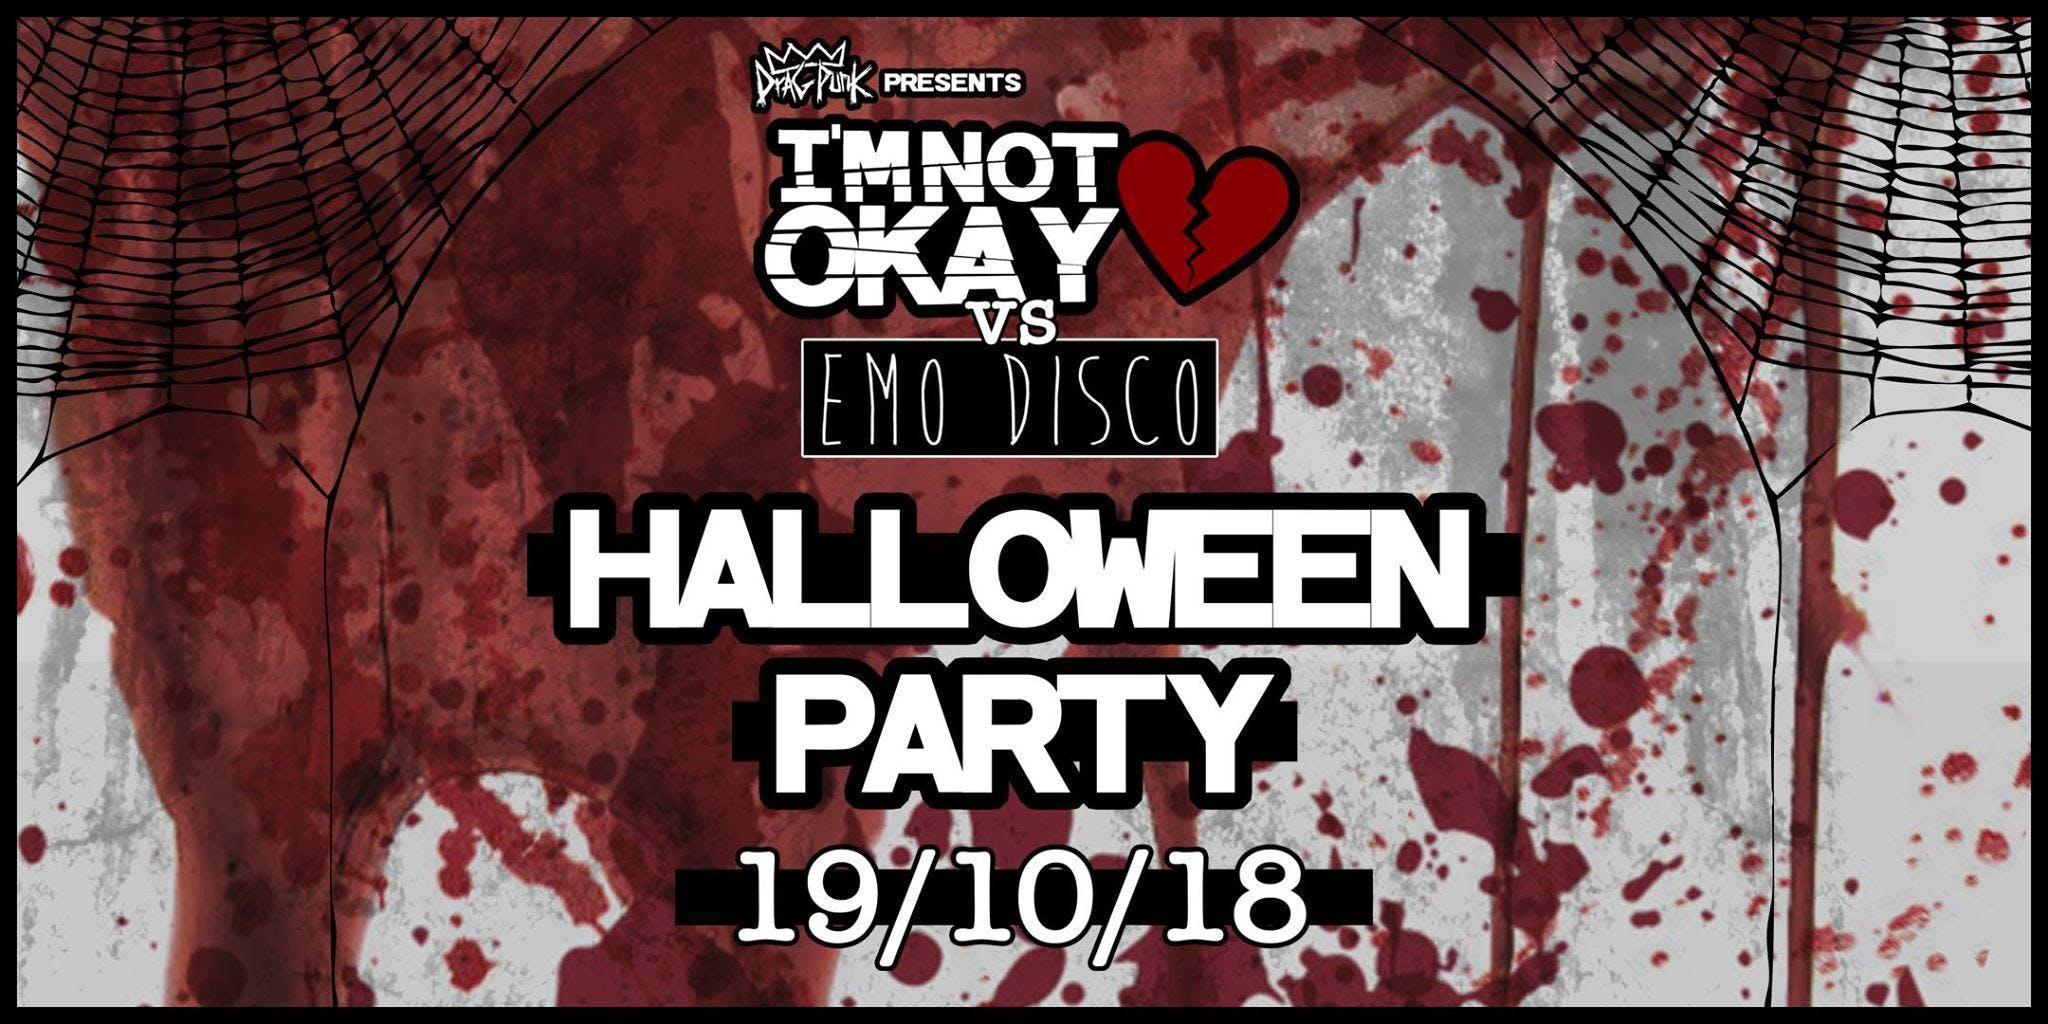 Dragpunk Presents: I'M NOT OKAY vs EMO DISCO